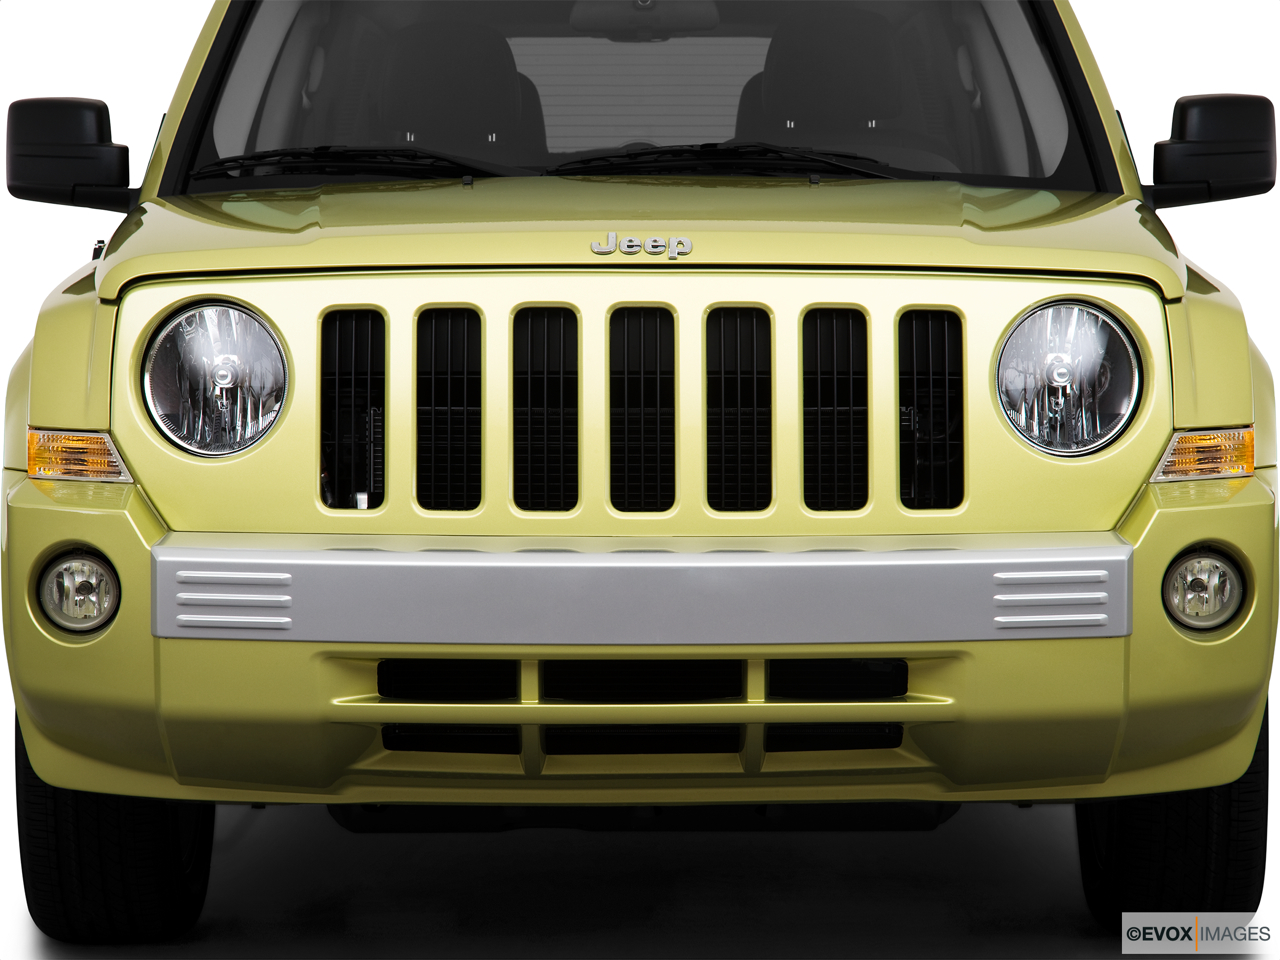 2010 Jeep Patriot Limited Close up of Grill.